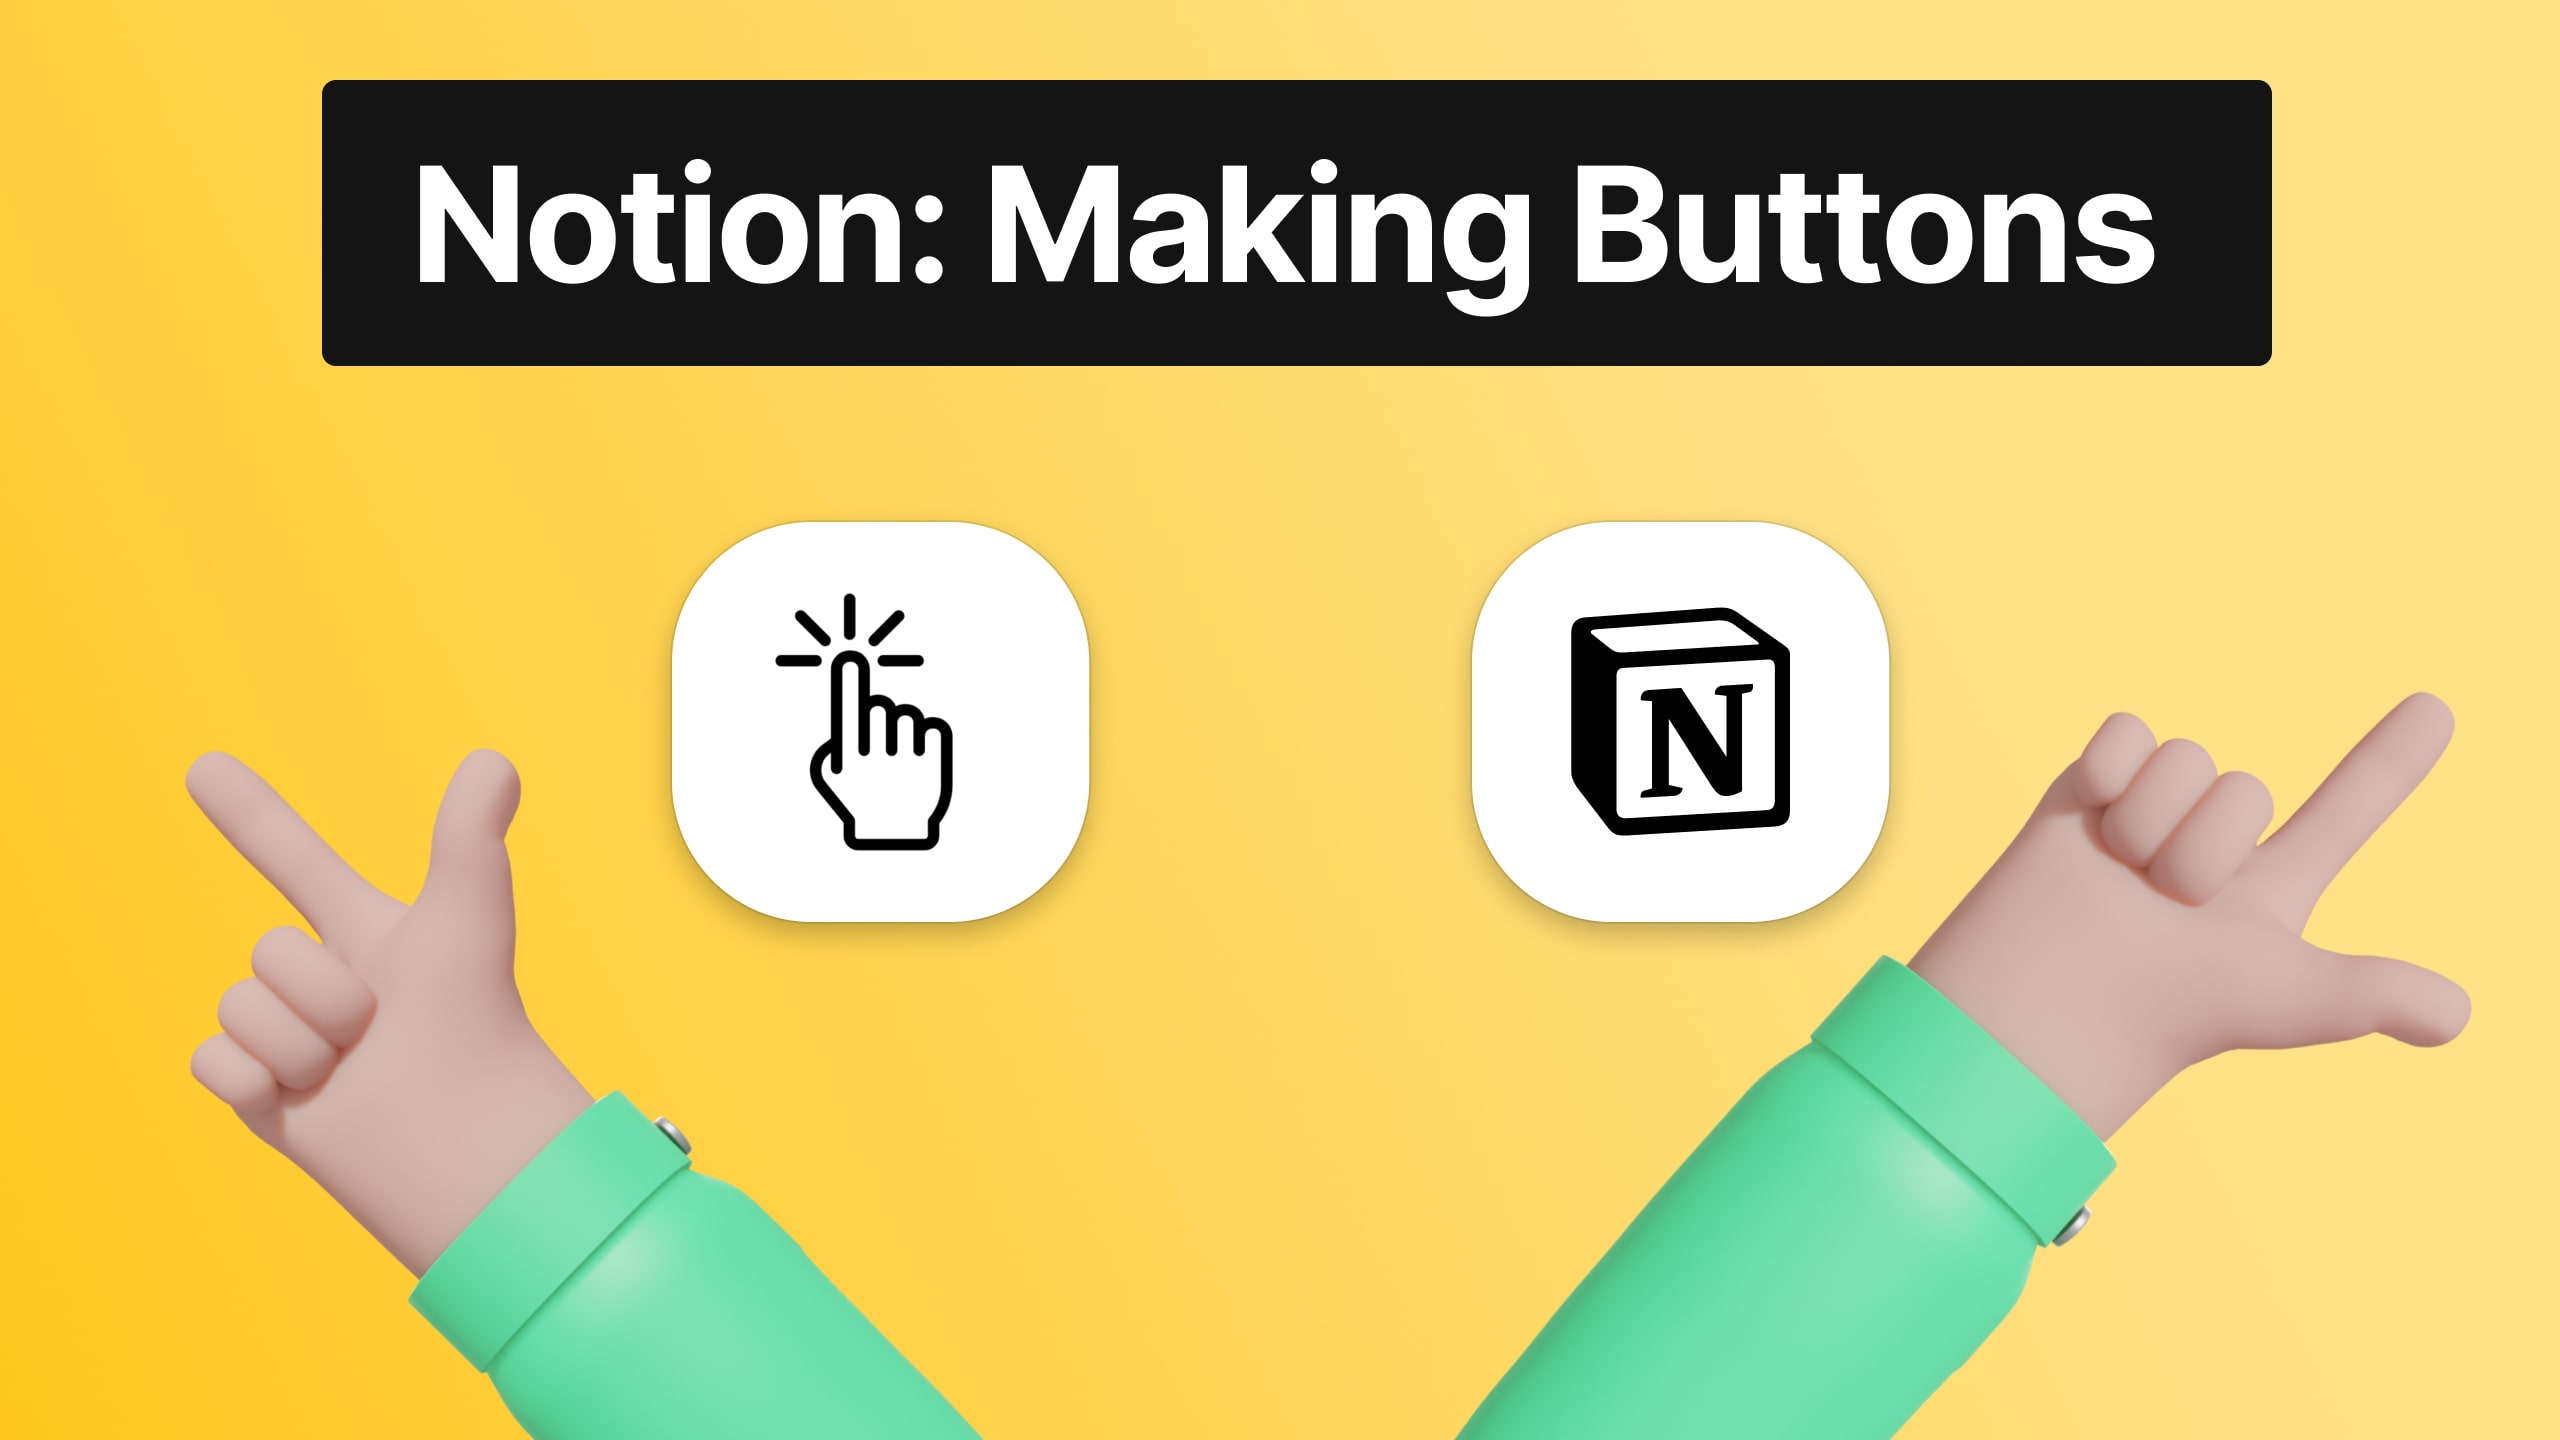 How to make buttons in Notion